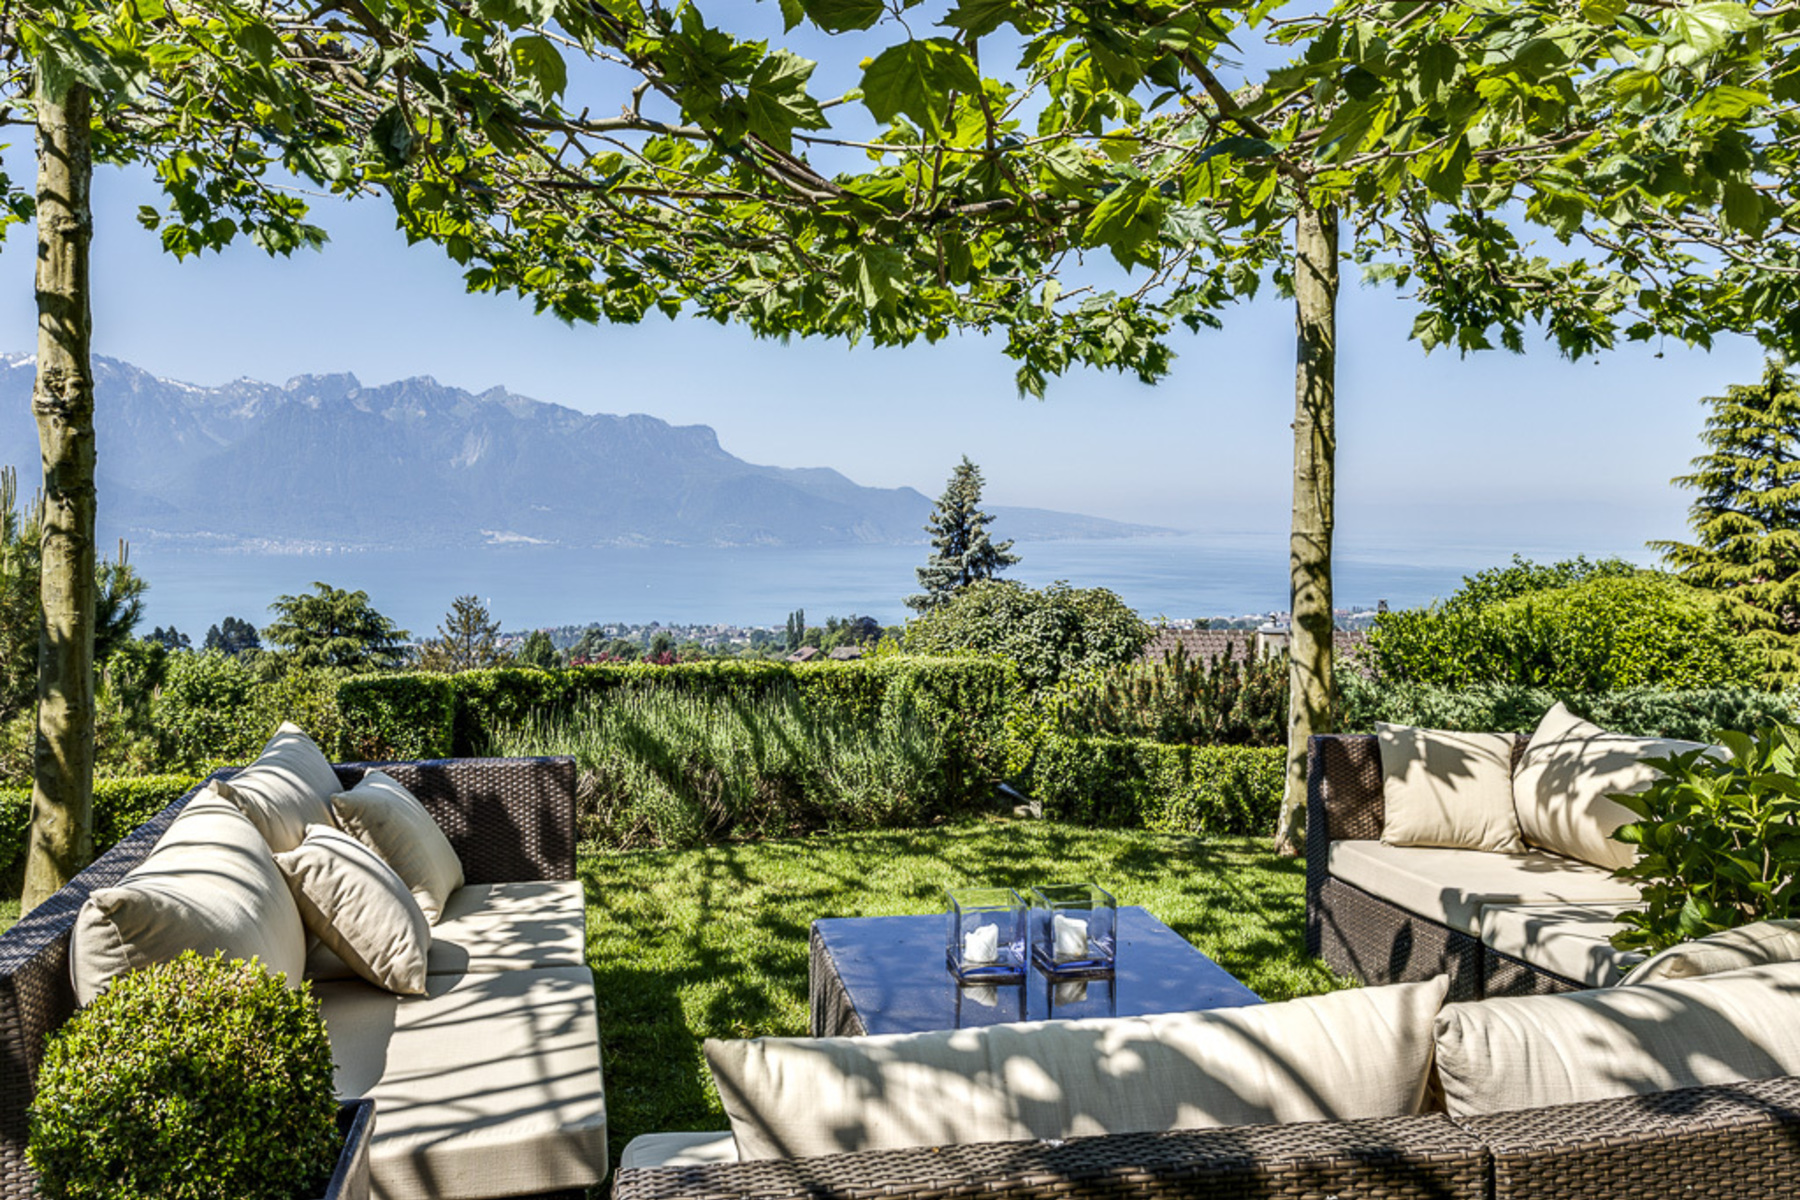 Casa Unifamiliar por un Venta en Exquisite 6.5 room family home Superb views over the lake Blonay Blonay, Vaud, 1807 Suiza